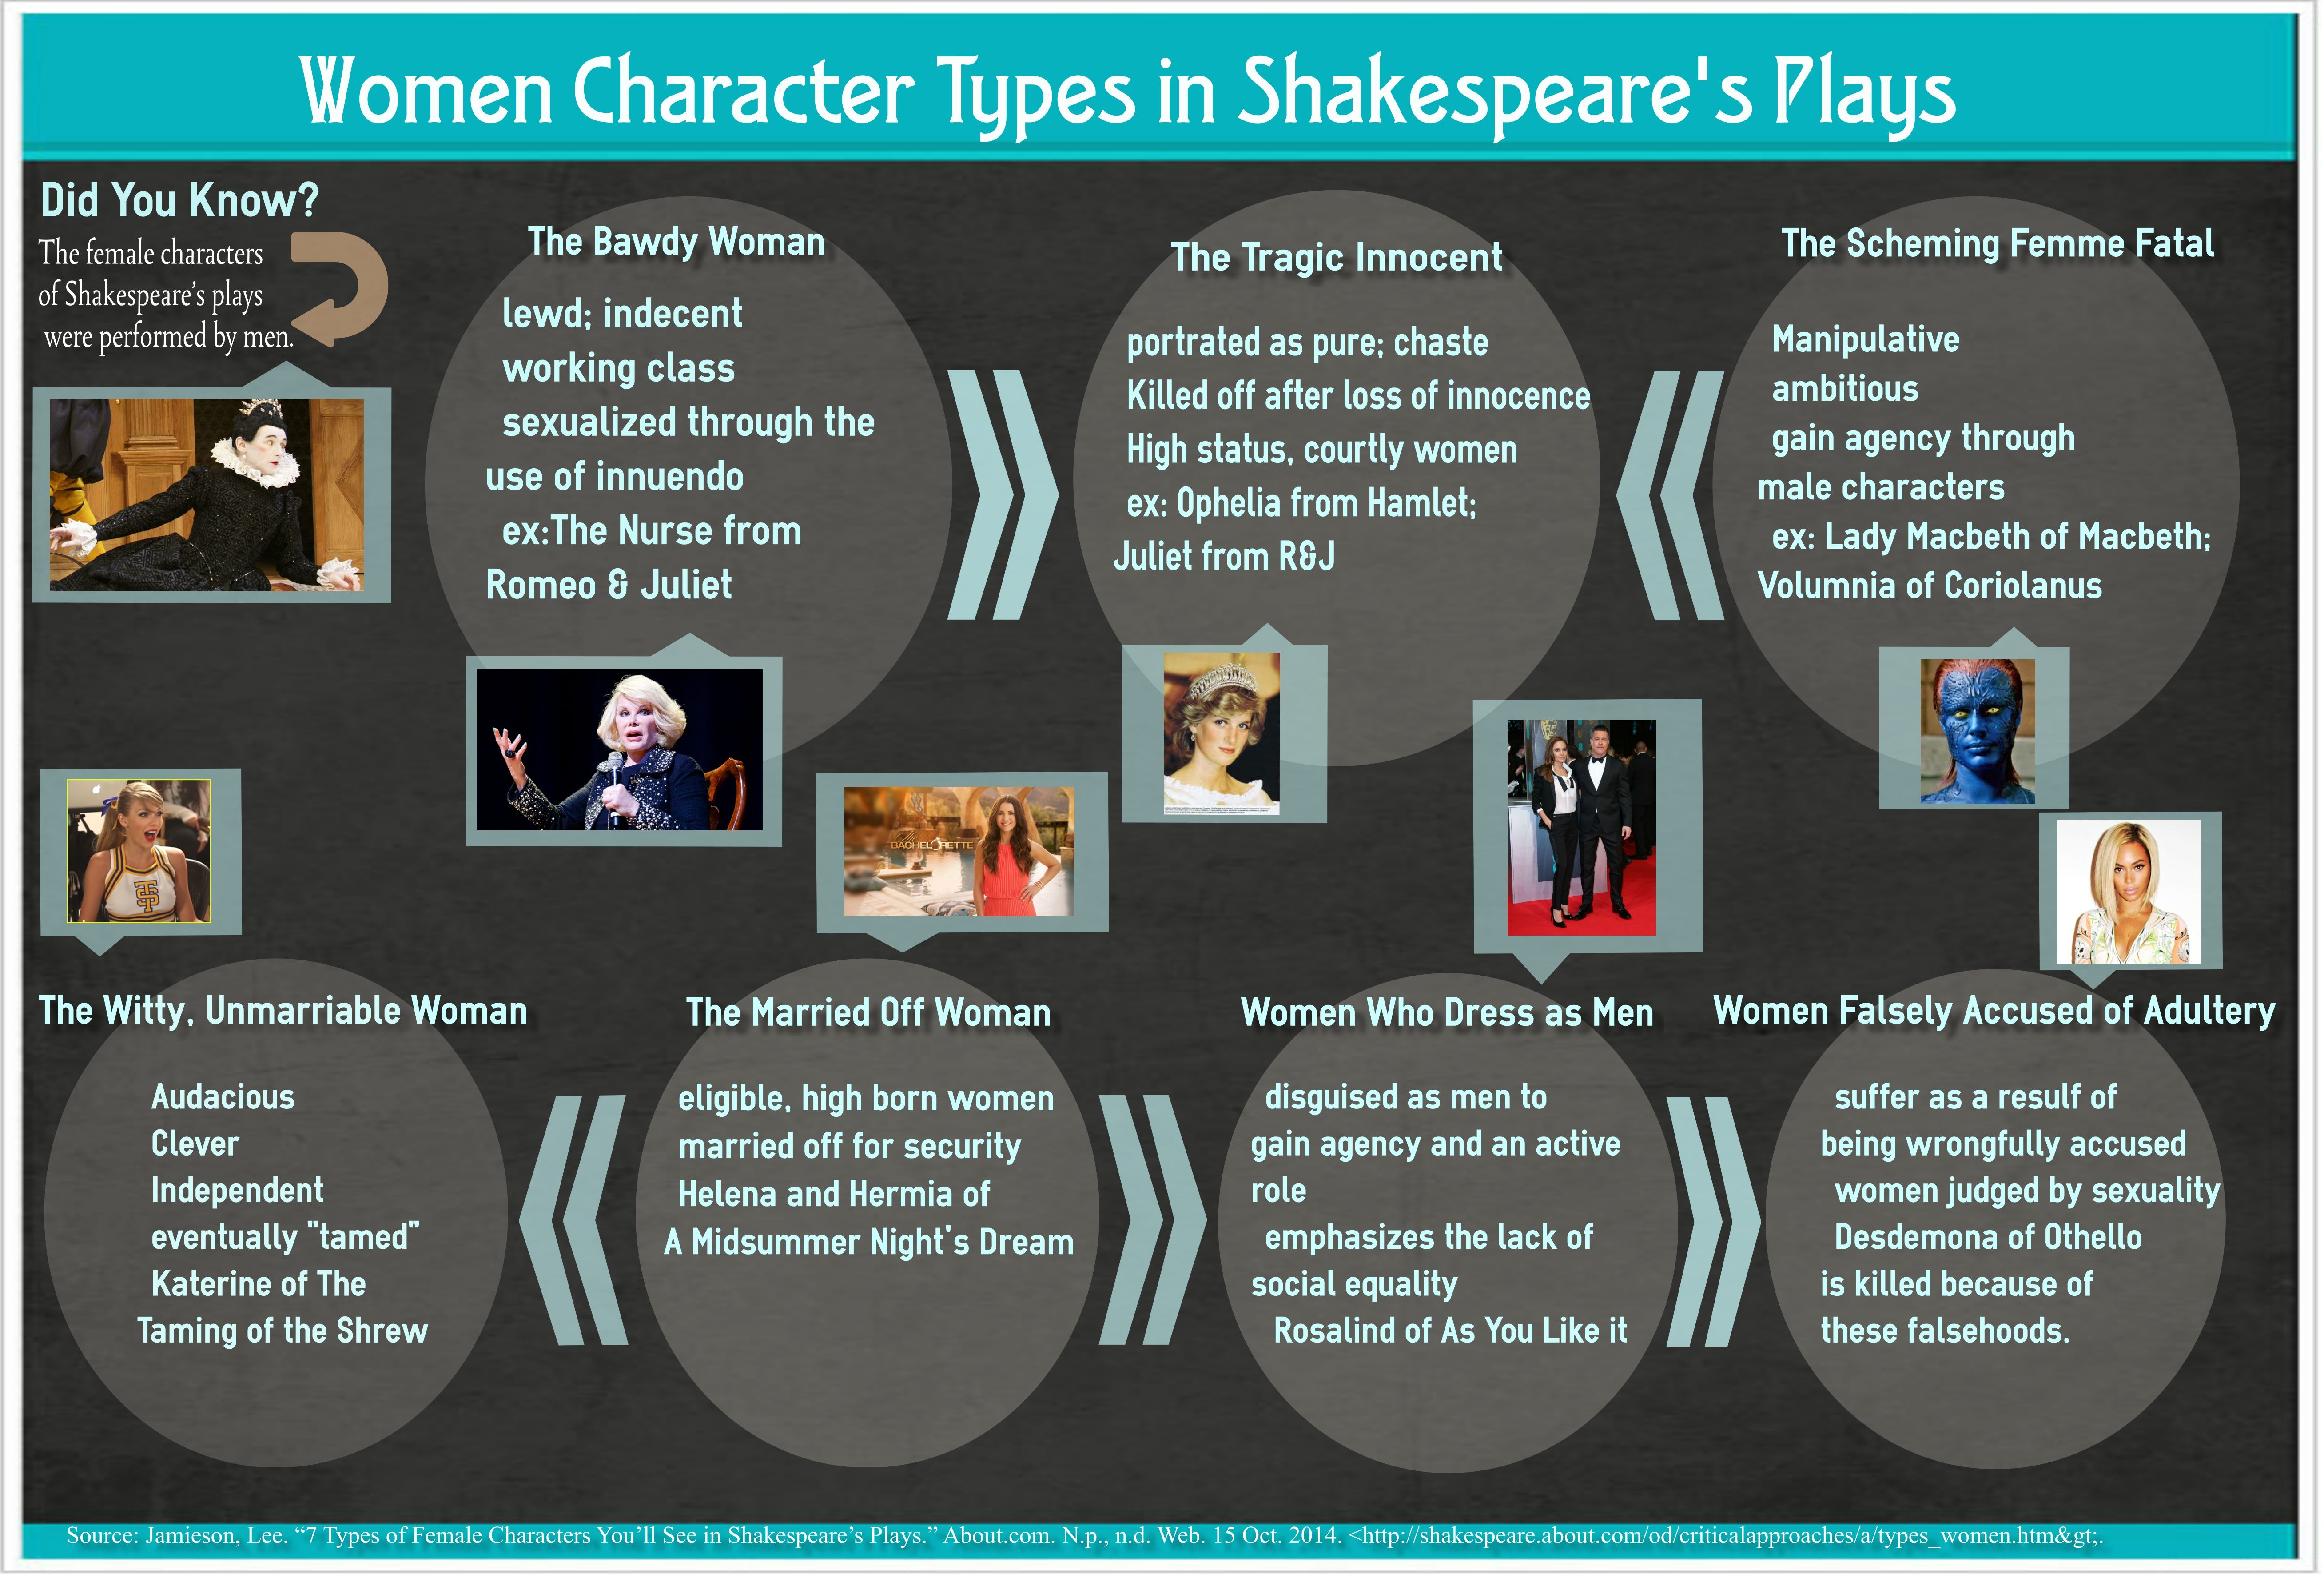 an analysis of women characters in shakespeares plays Imogen, like many ofthe women in shakespeare's plays, displays a depth of   female characters continue to engage our imaginations, as demonstrated by the   gender's interpretation ofthe other gender is based on a limited perspective.